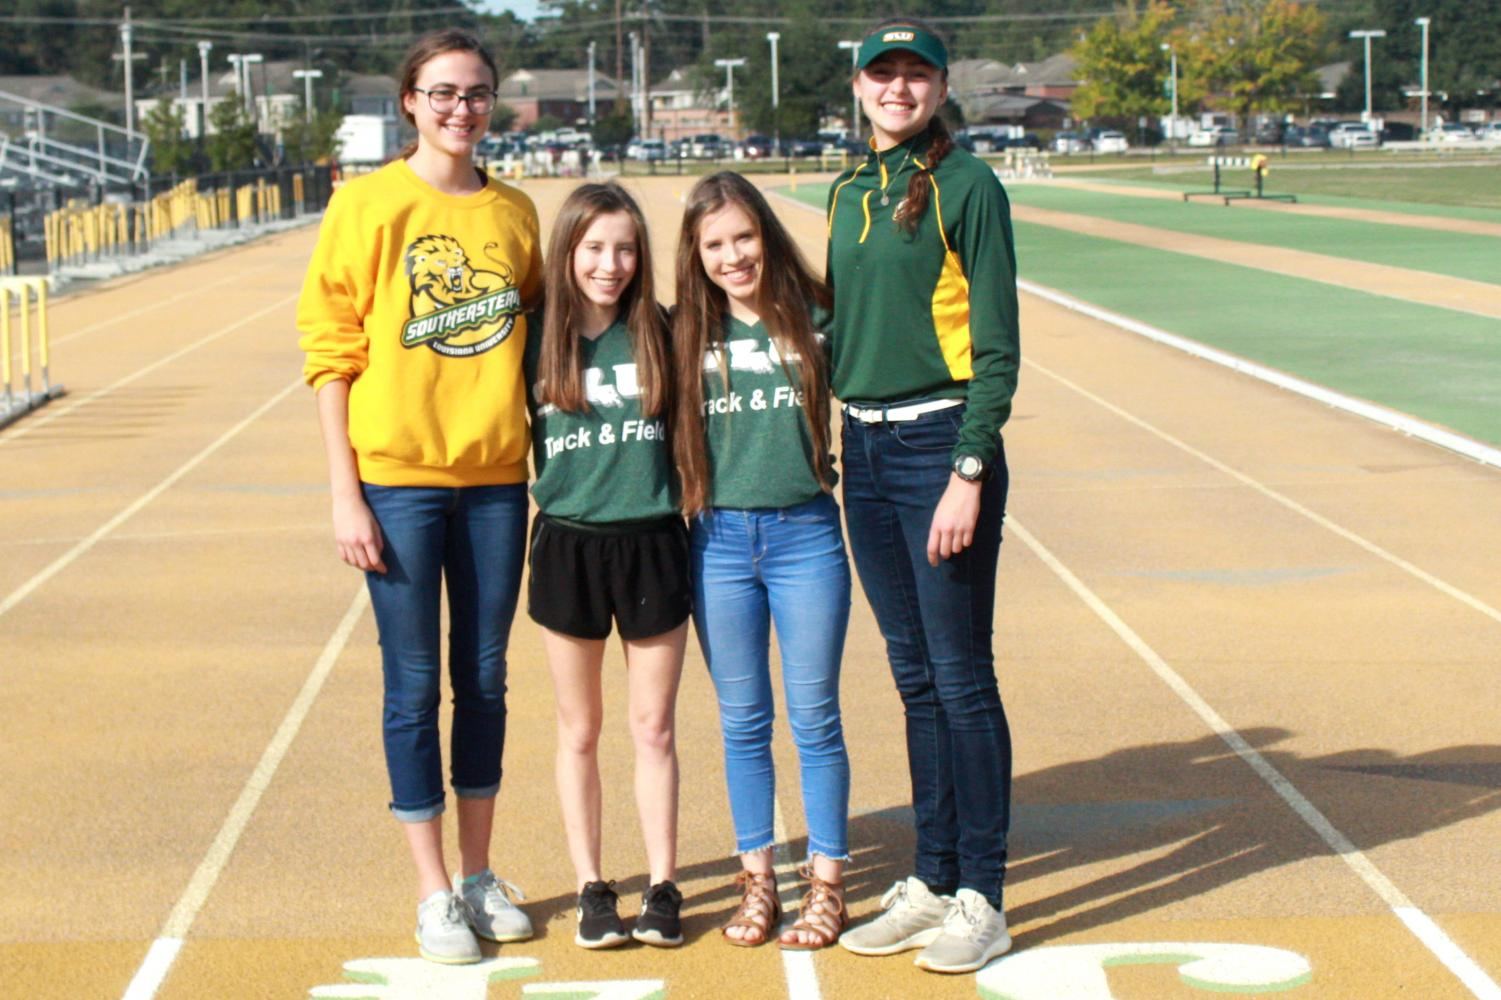 The university women's cross country team now has two sets of twins. Berni Tournoux, Belle Vignes, Blair Vignes and Brigid Tournoux are all freshman distance runners. The team finished their 2019 season with the Southland Conference Championships on Nov. 1 in Conway, Ark.